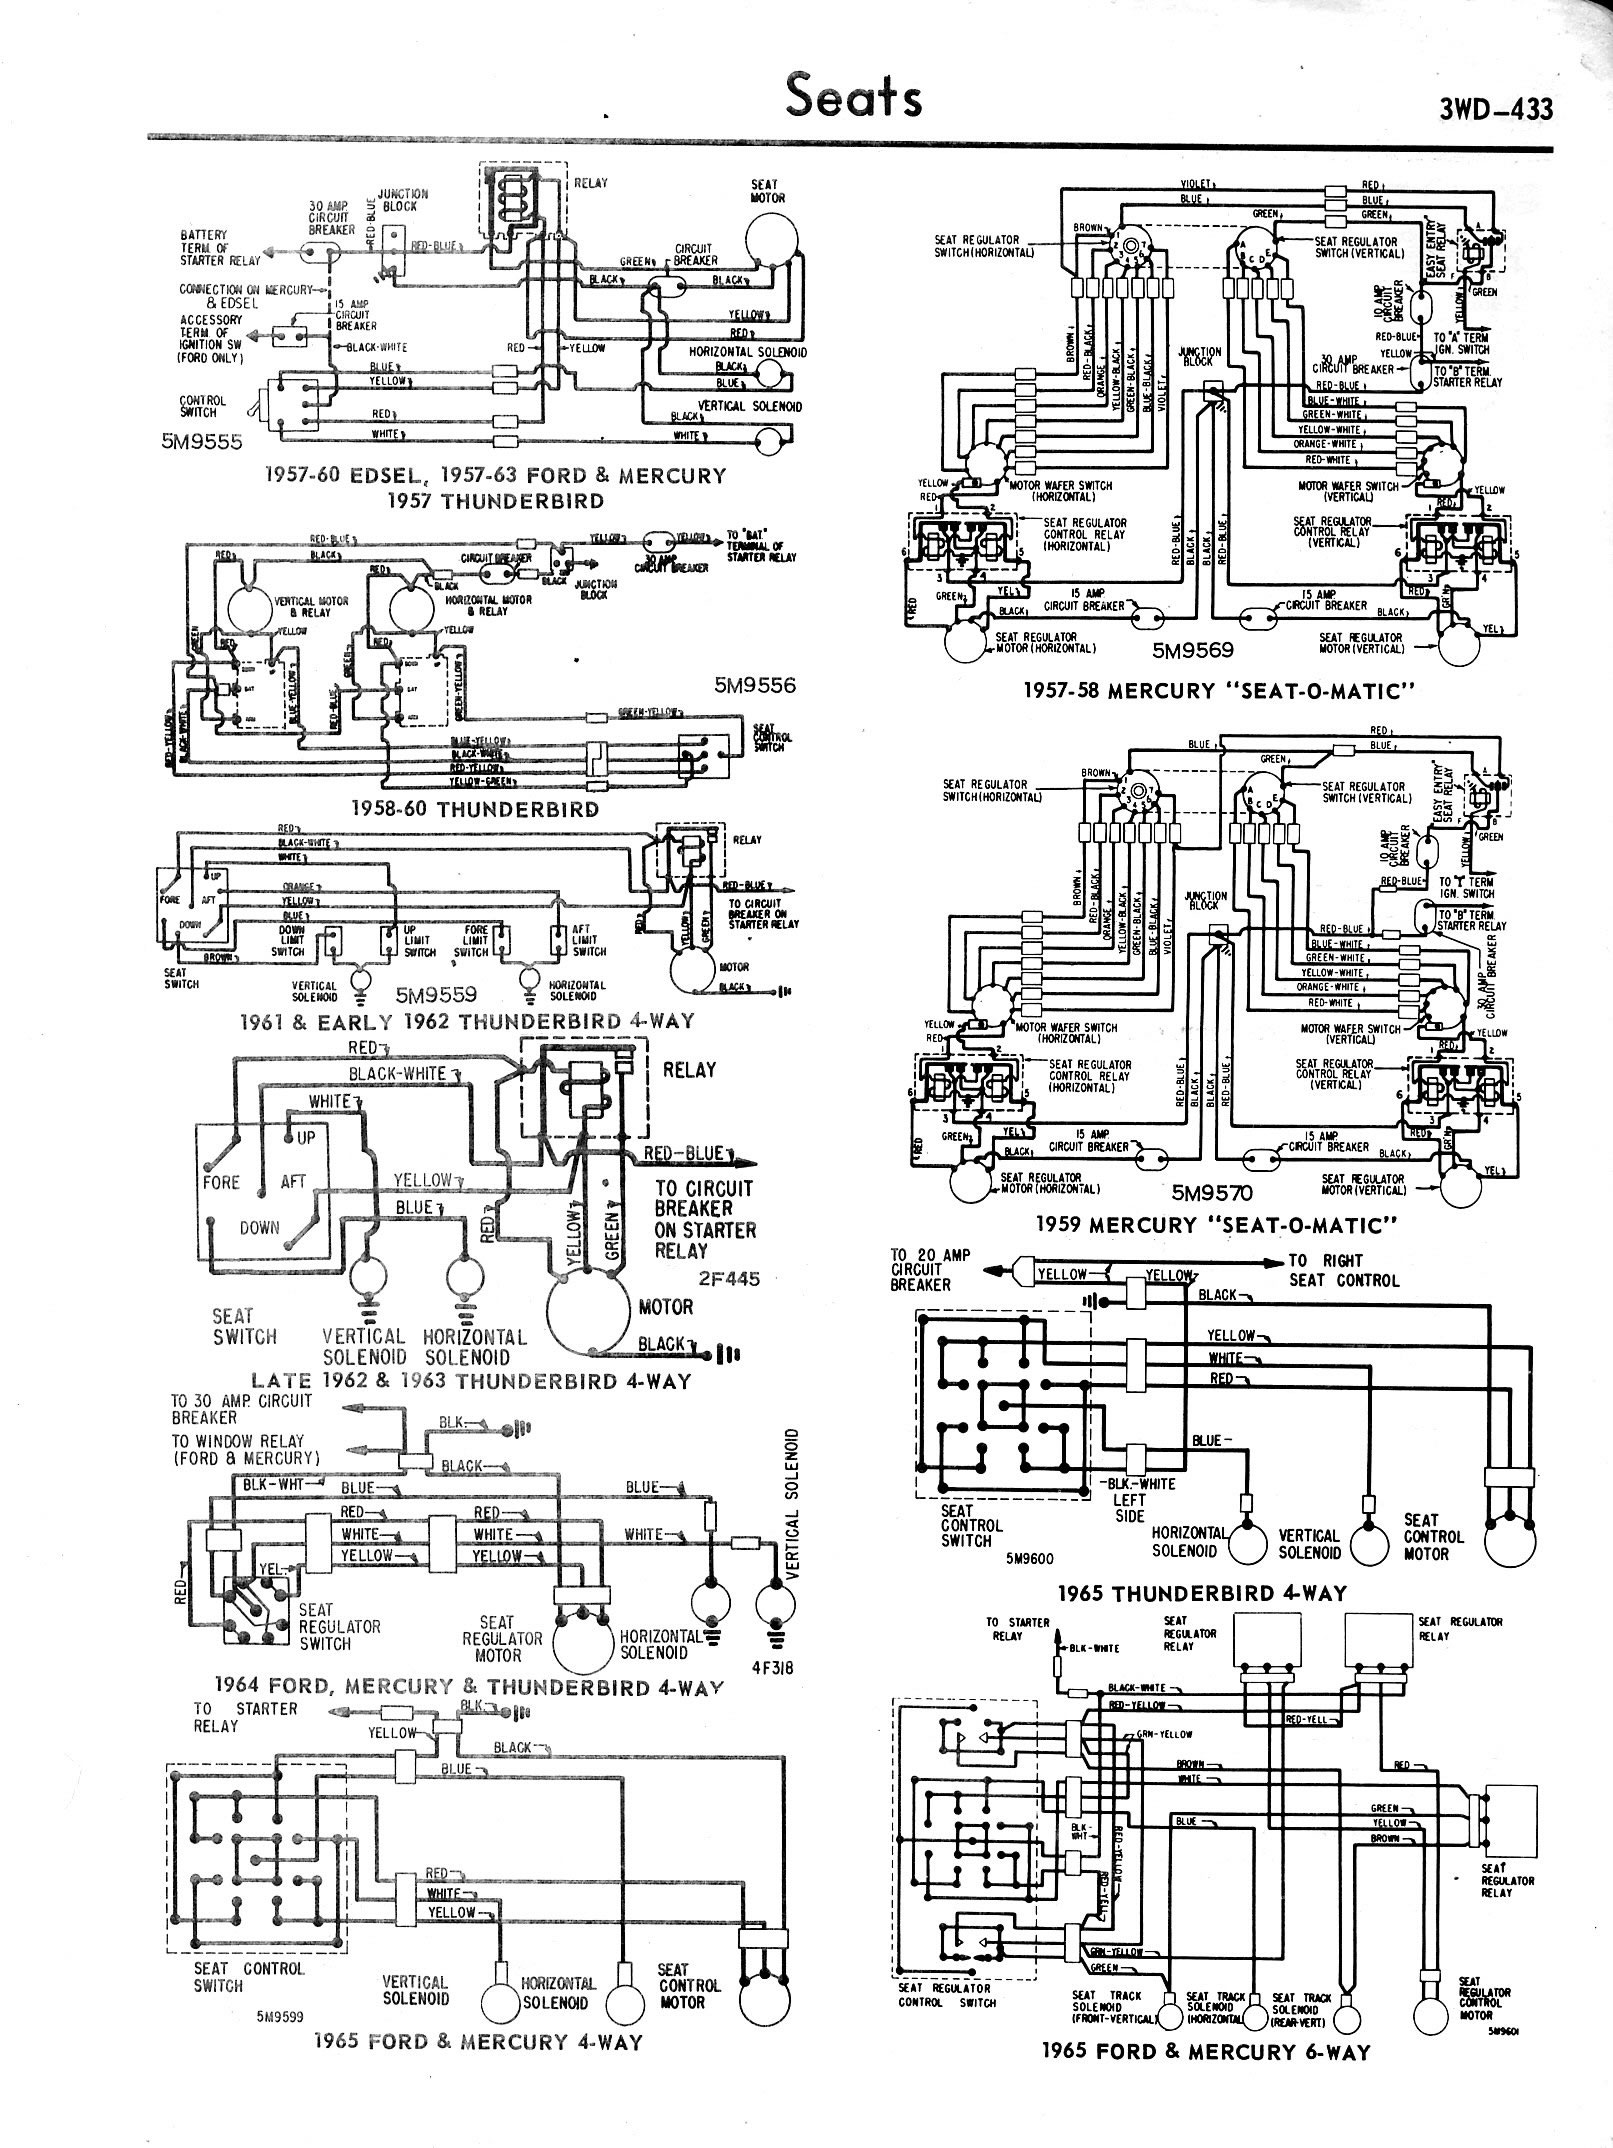 1965 thunderbird wiring diagrams wiring diagrams